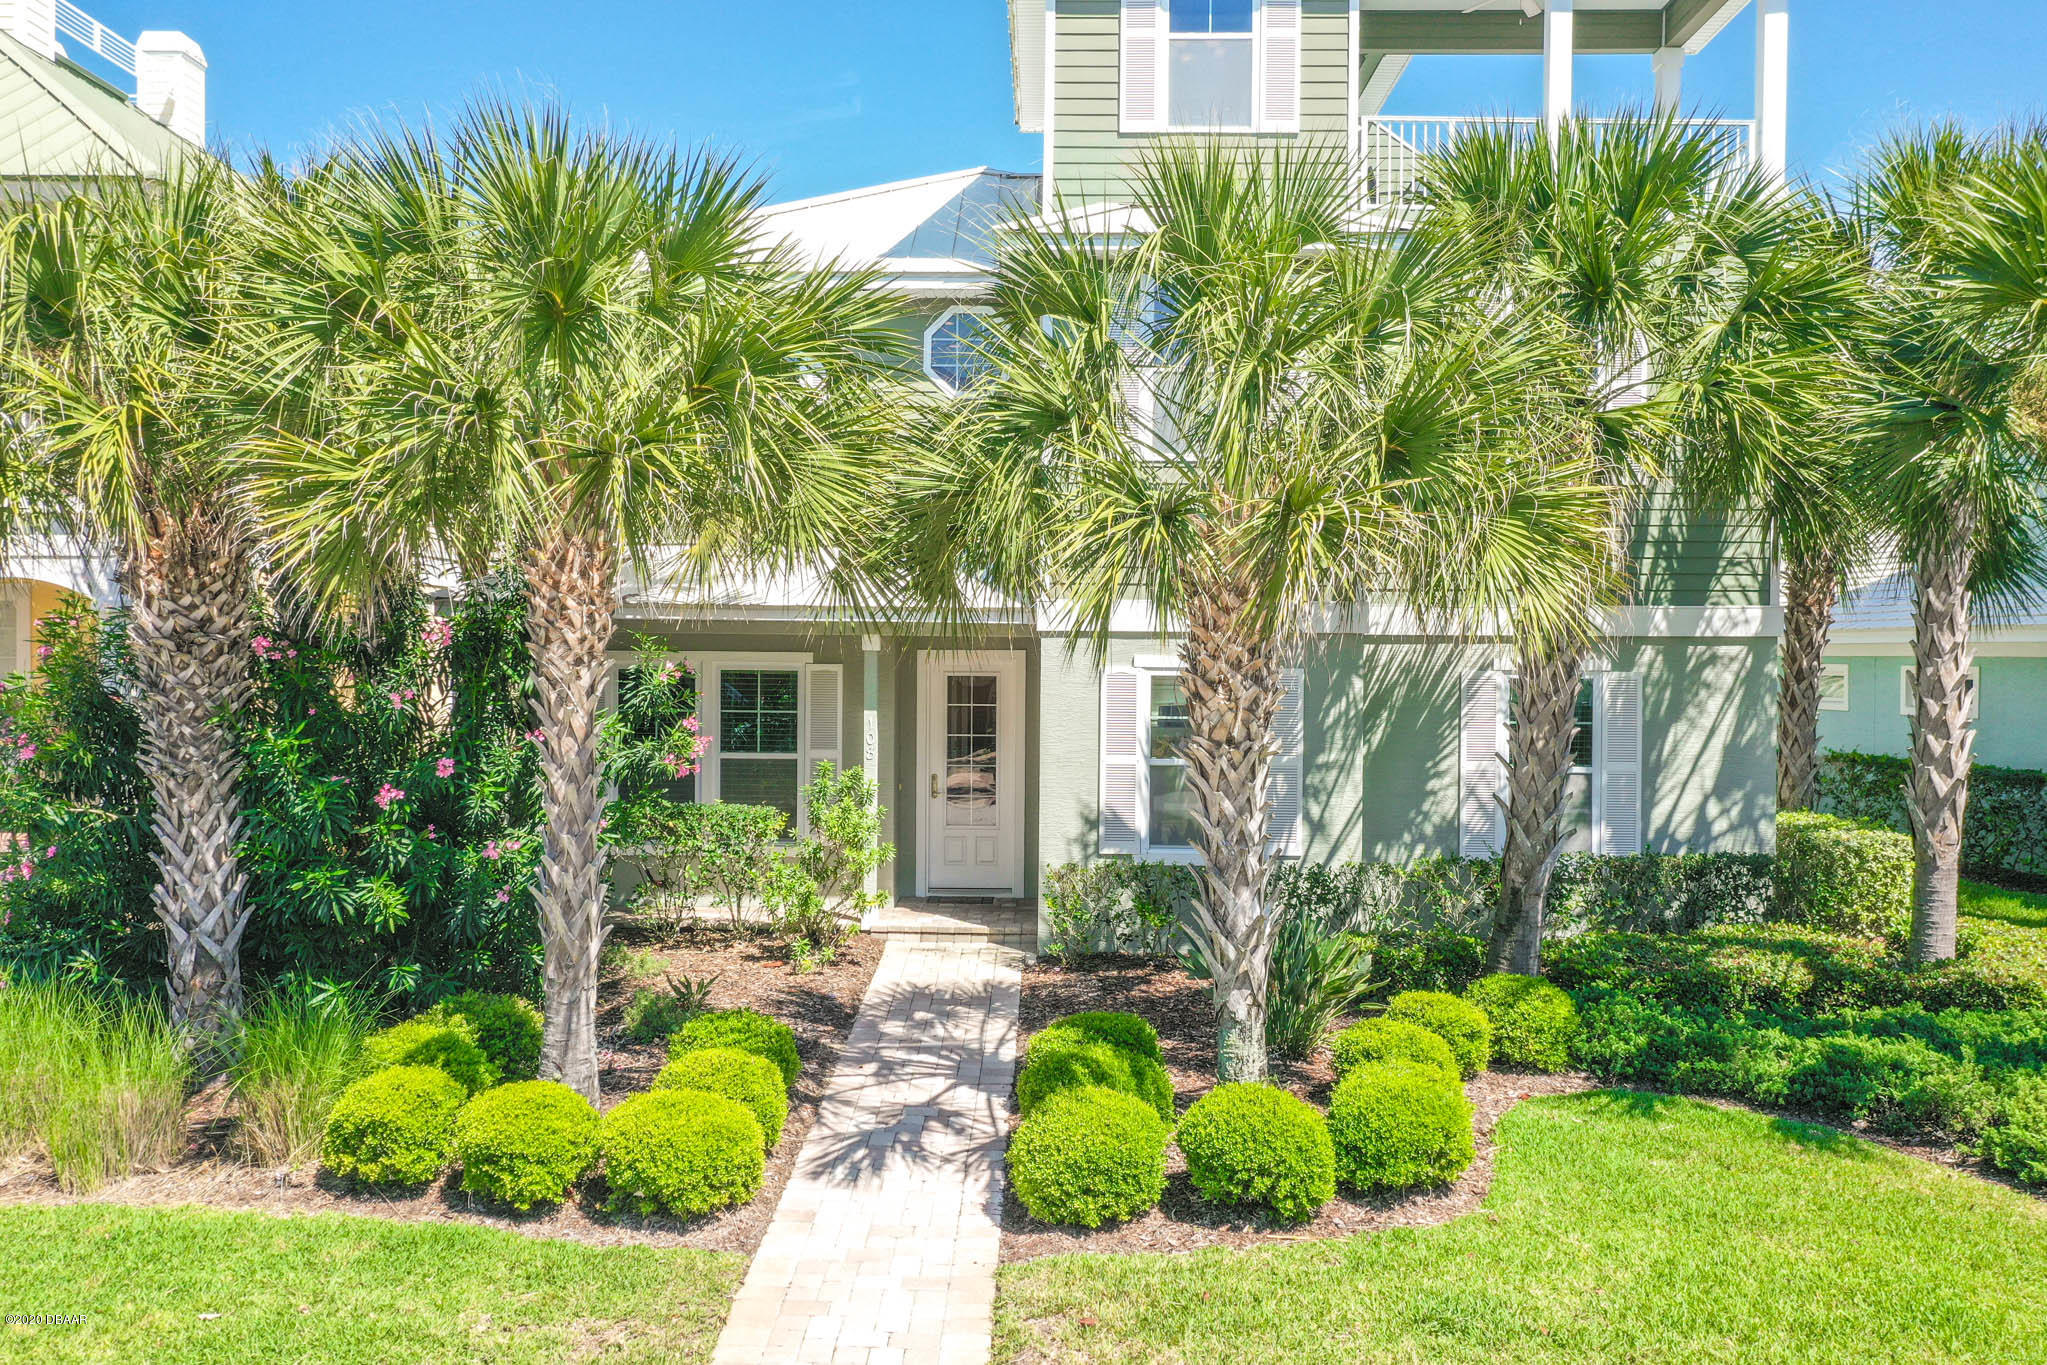 Photo of 108 N Ocean Way, Palm Coast, FL 32137